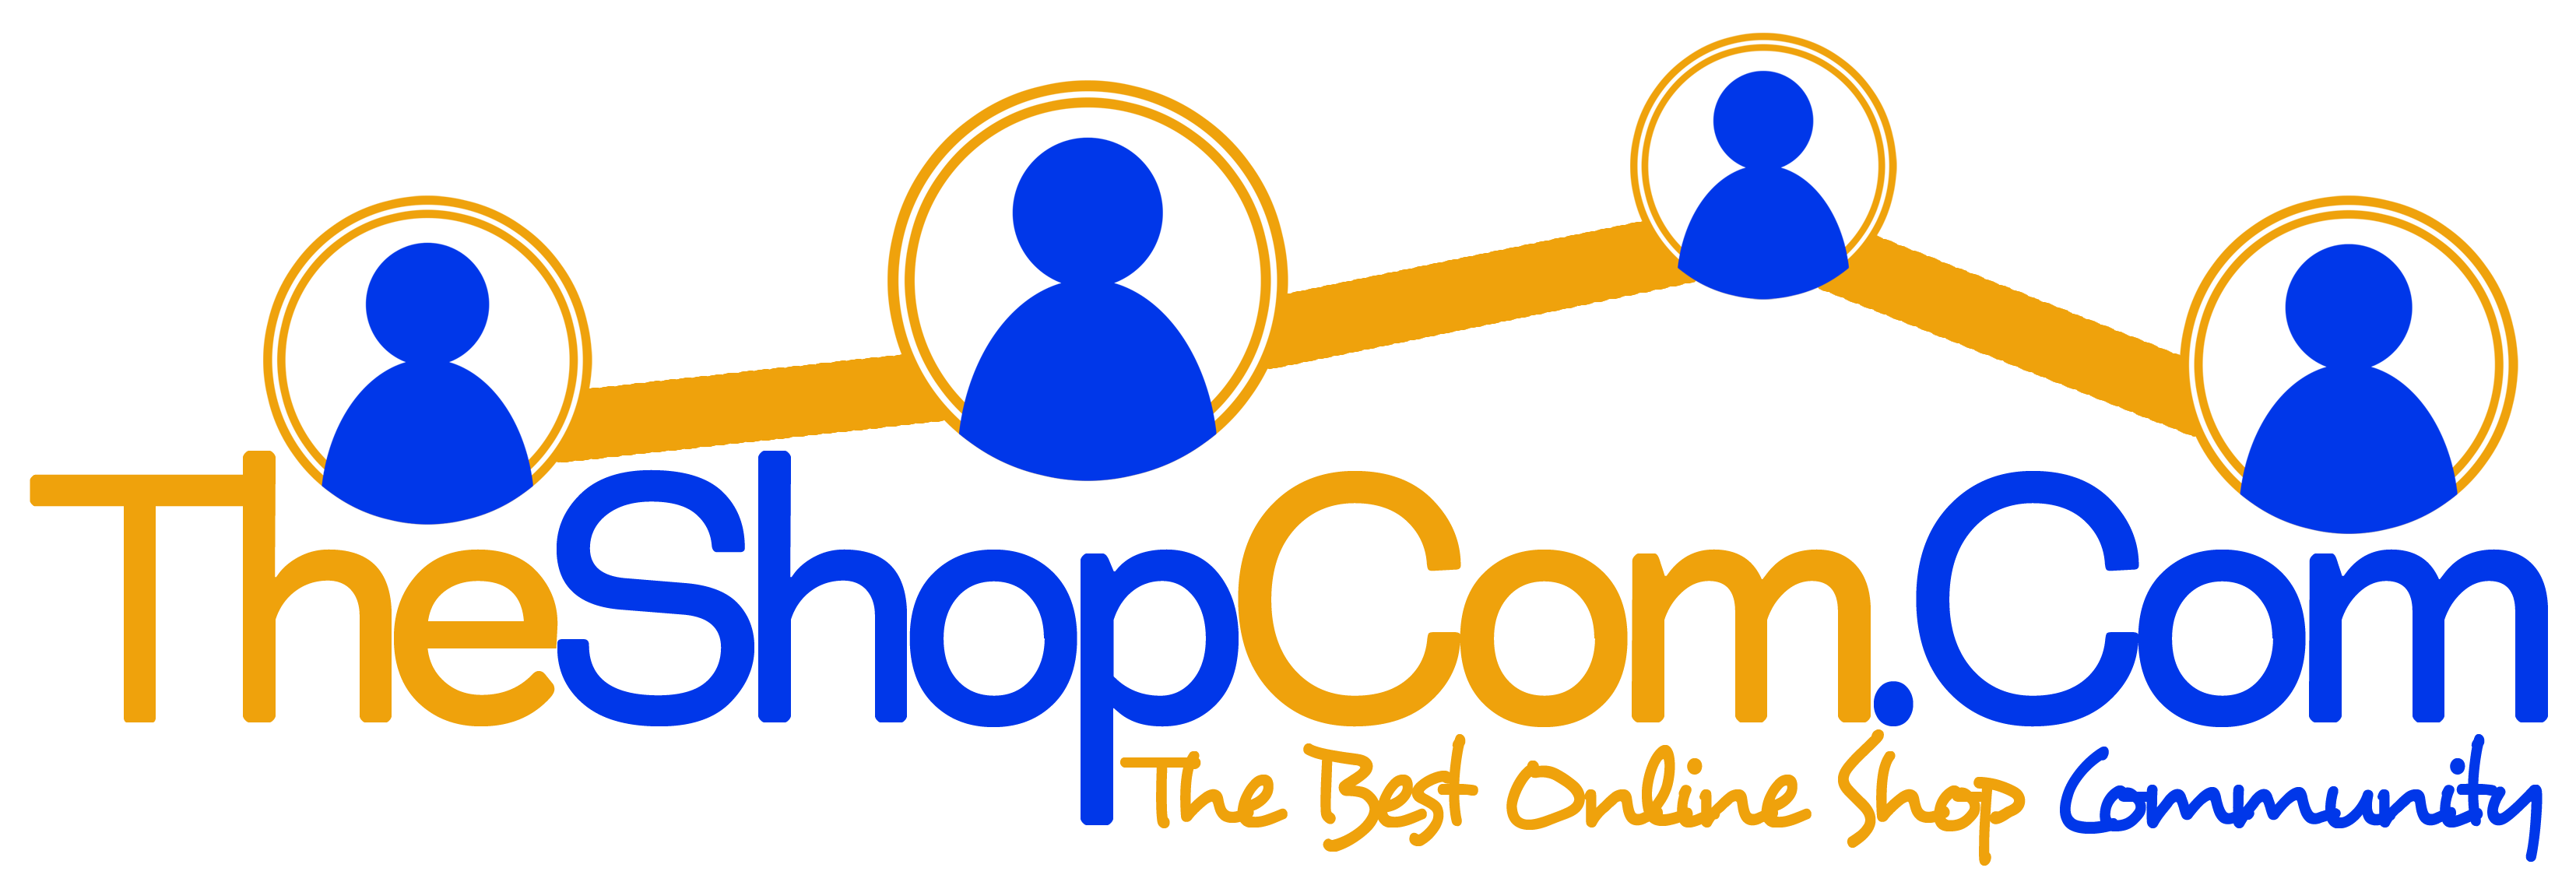 TheShopCom - Online Shop Community